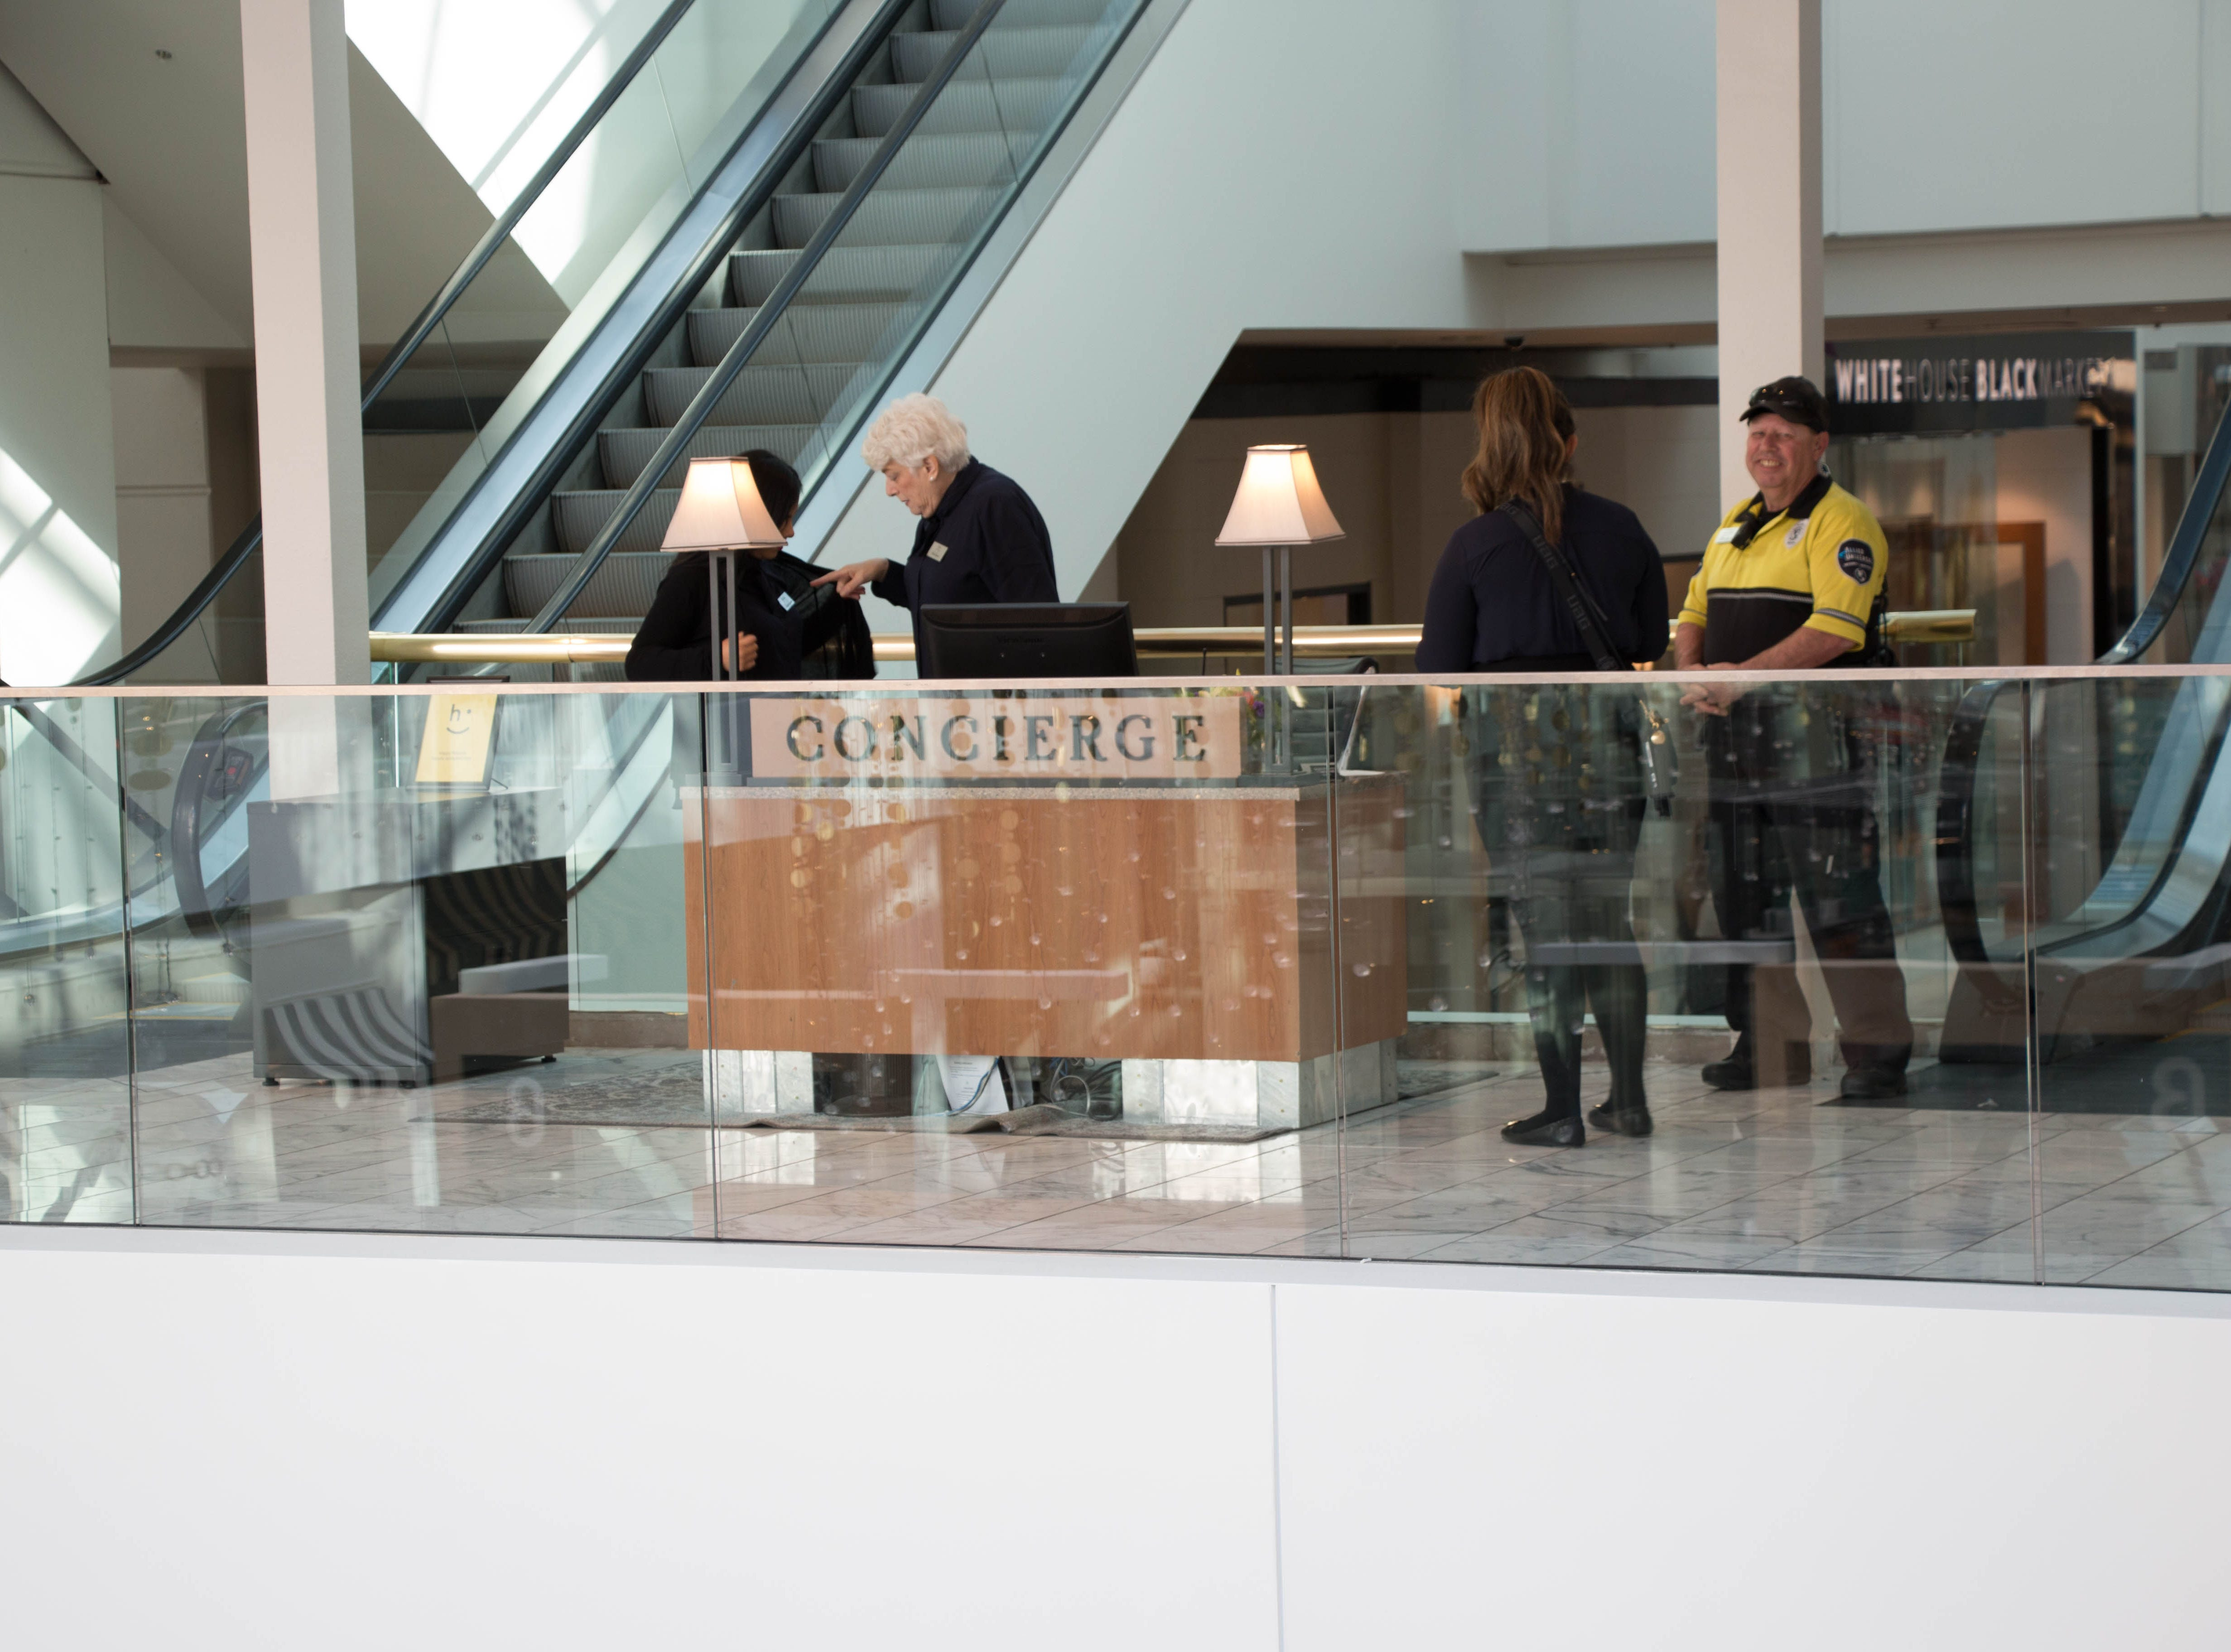 Plans to add an additional concierge in the luxury wing are underway.